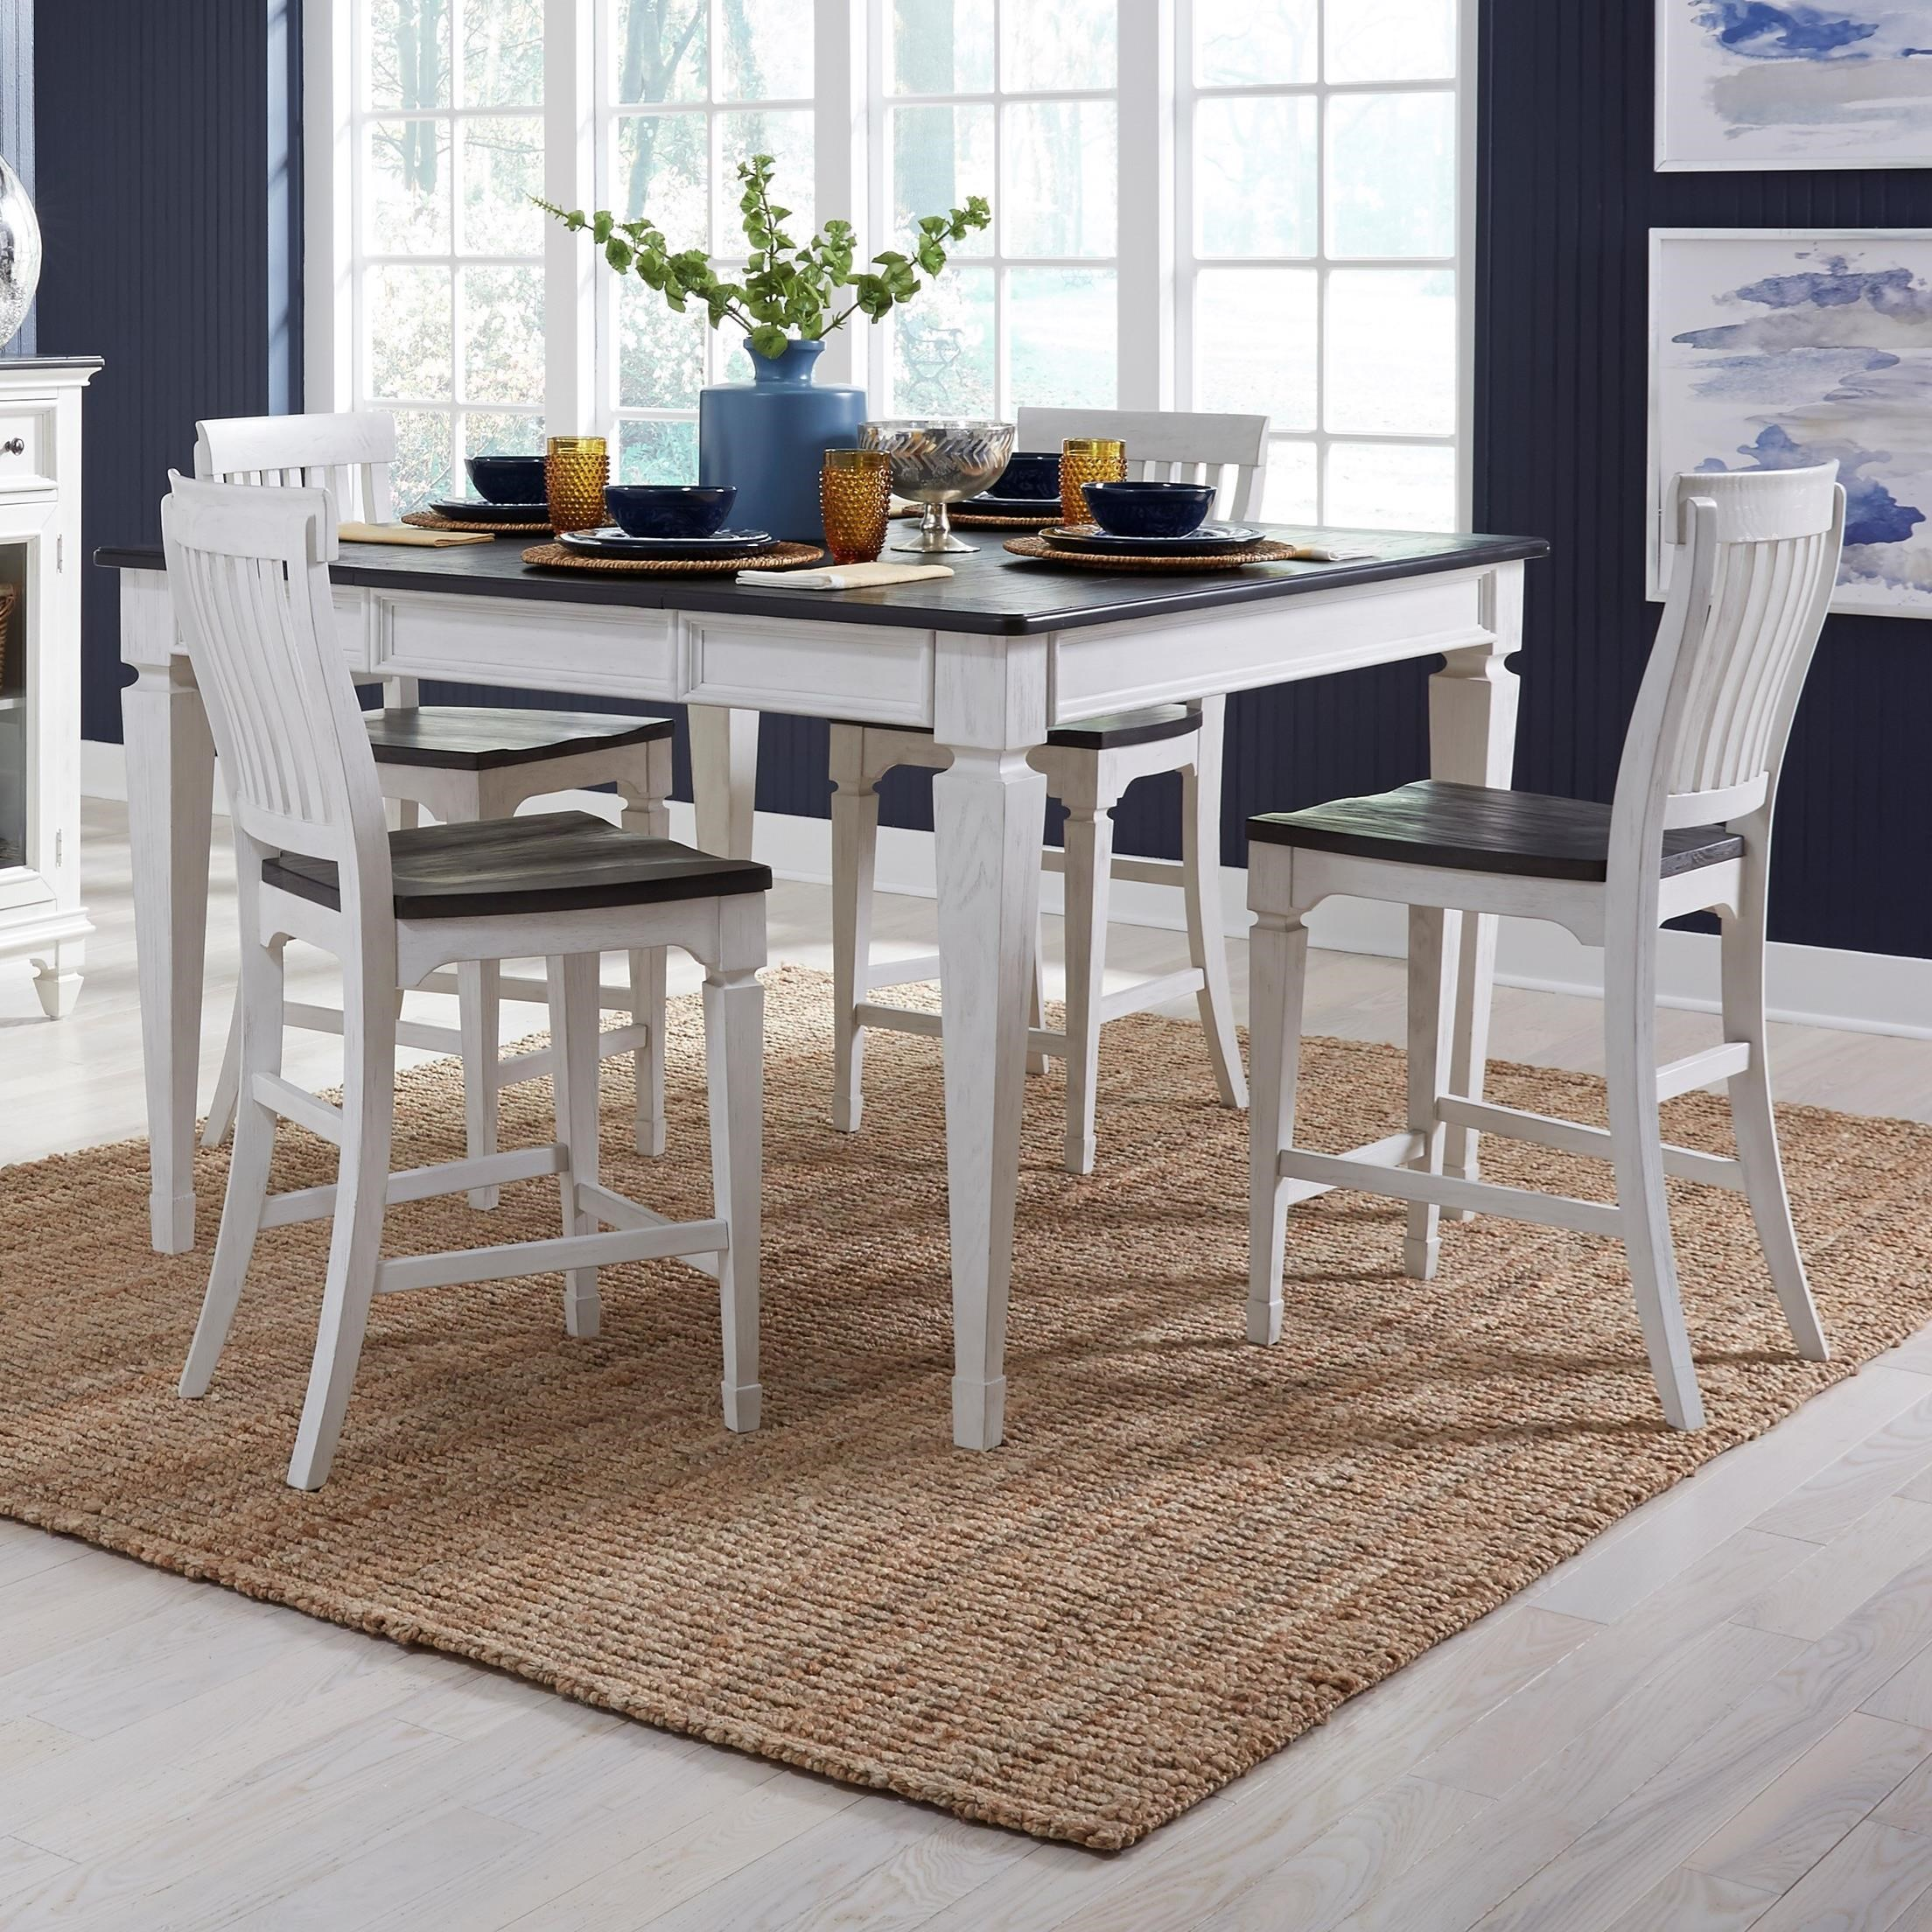 Allyson Park 5-Piece Gathering Table Set by Liberty Furniture at Standard Furniture